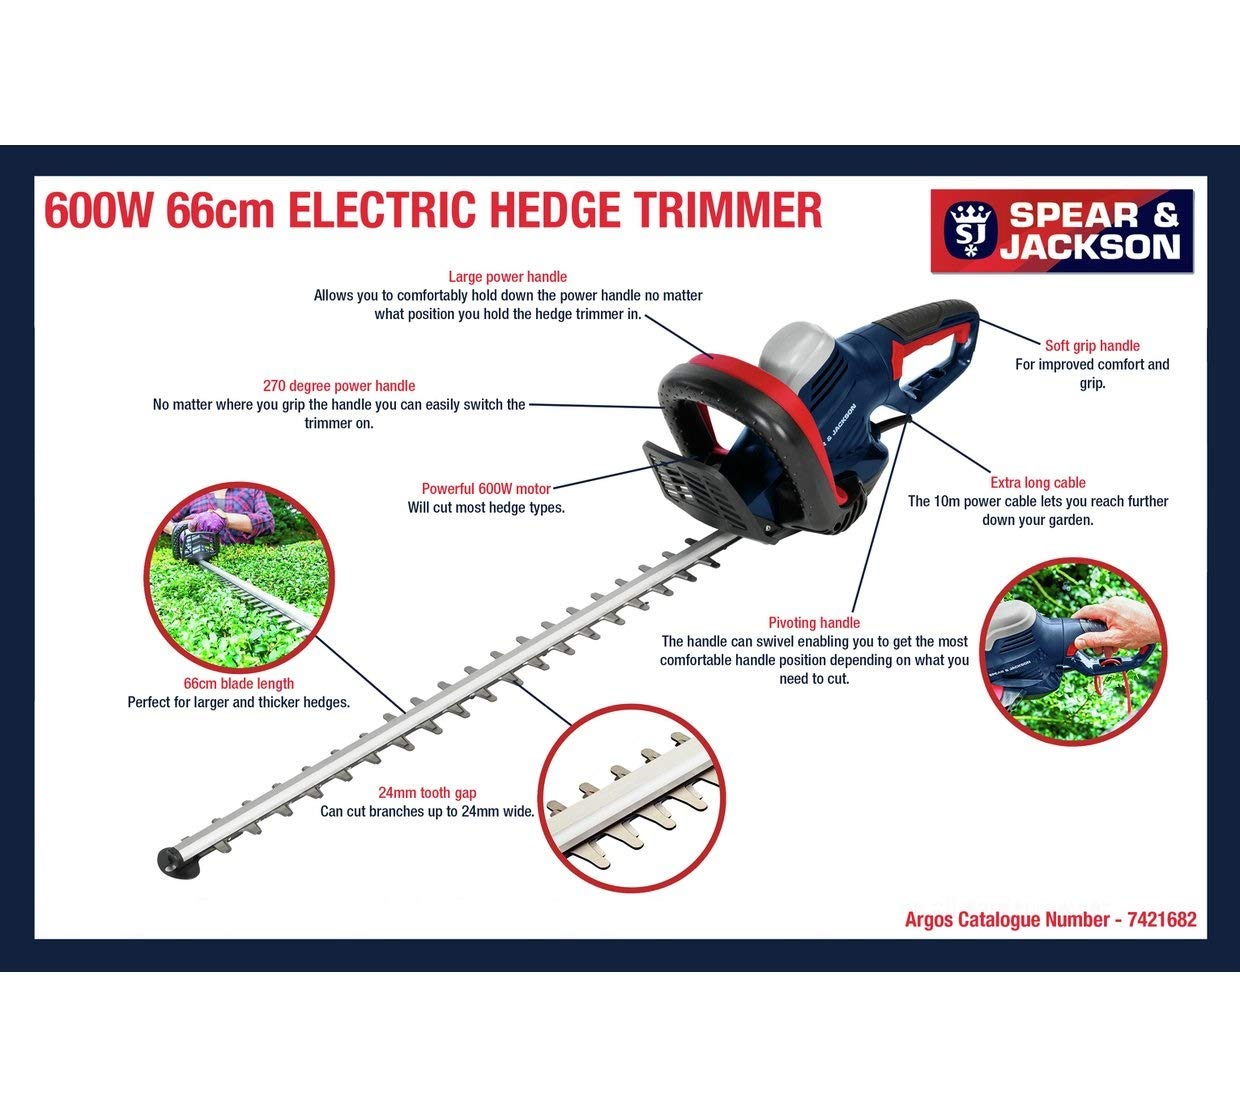 Spear & Jackson - 66cm Corded Hedge Trimmer - 600W: Amazon